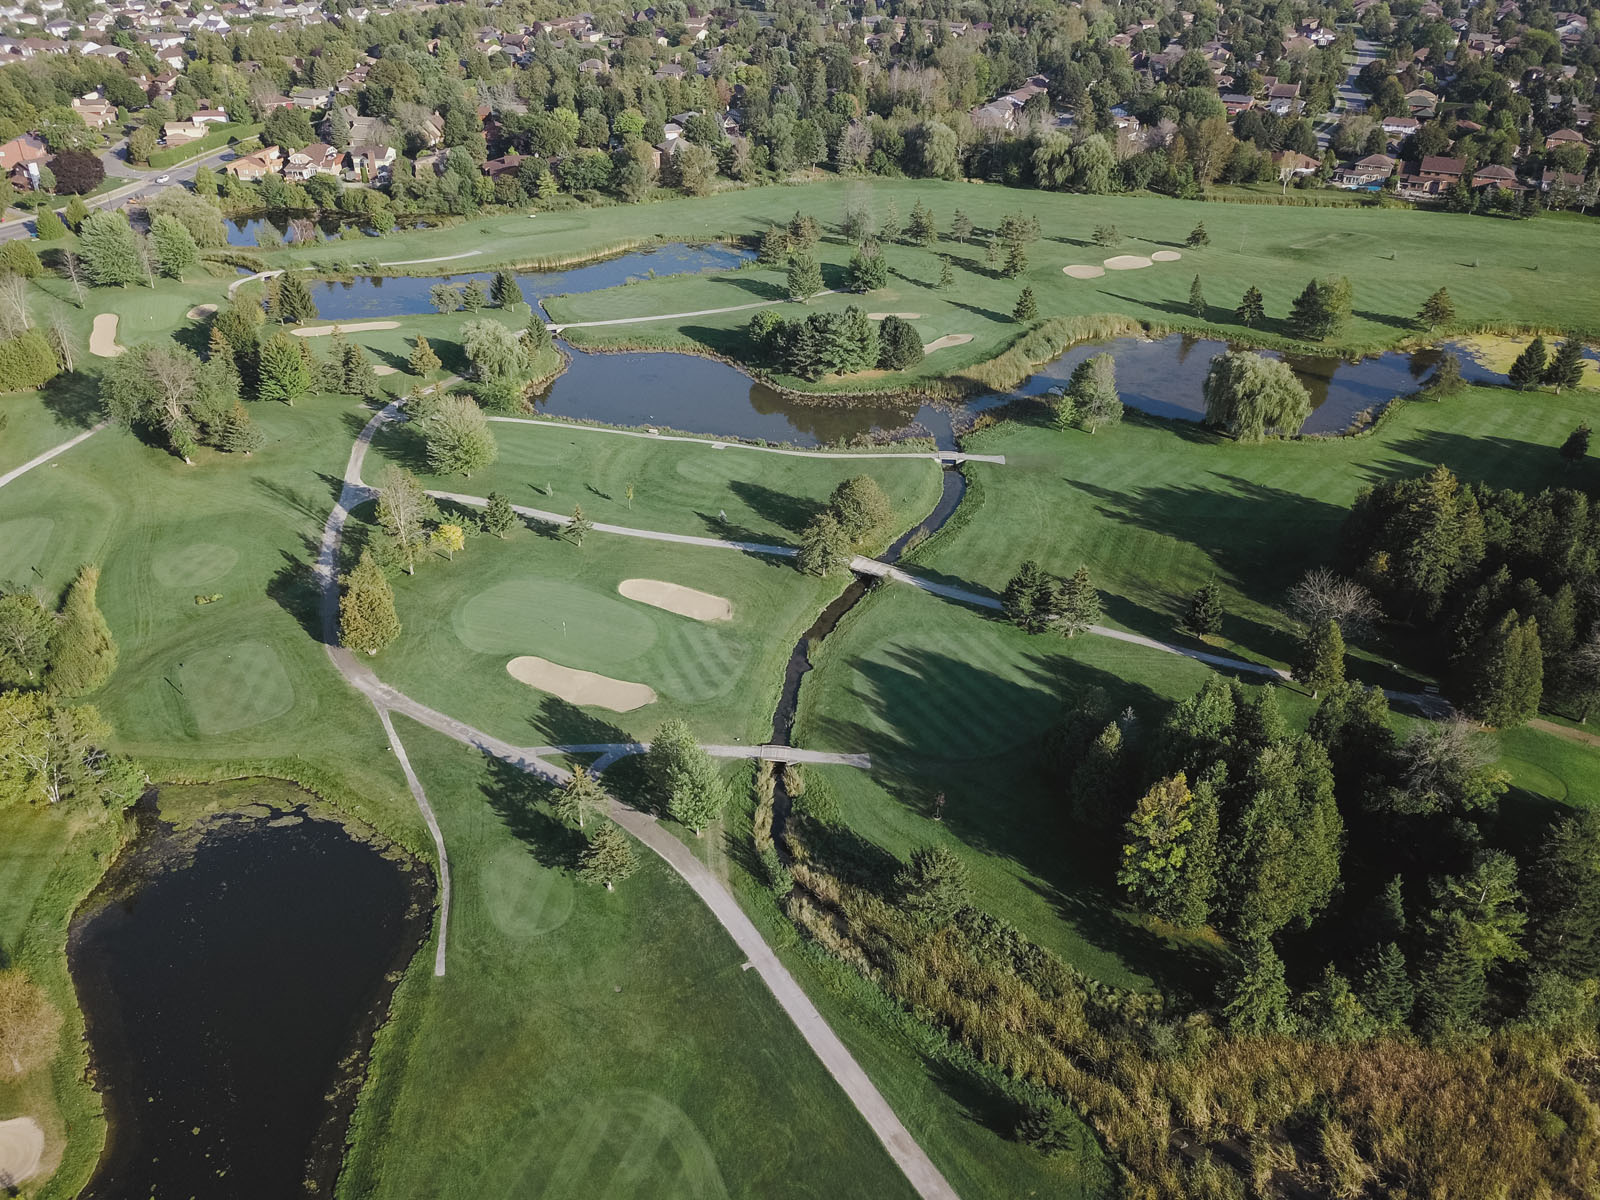 Stittsville Golf Course